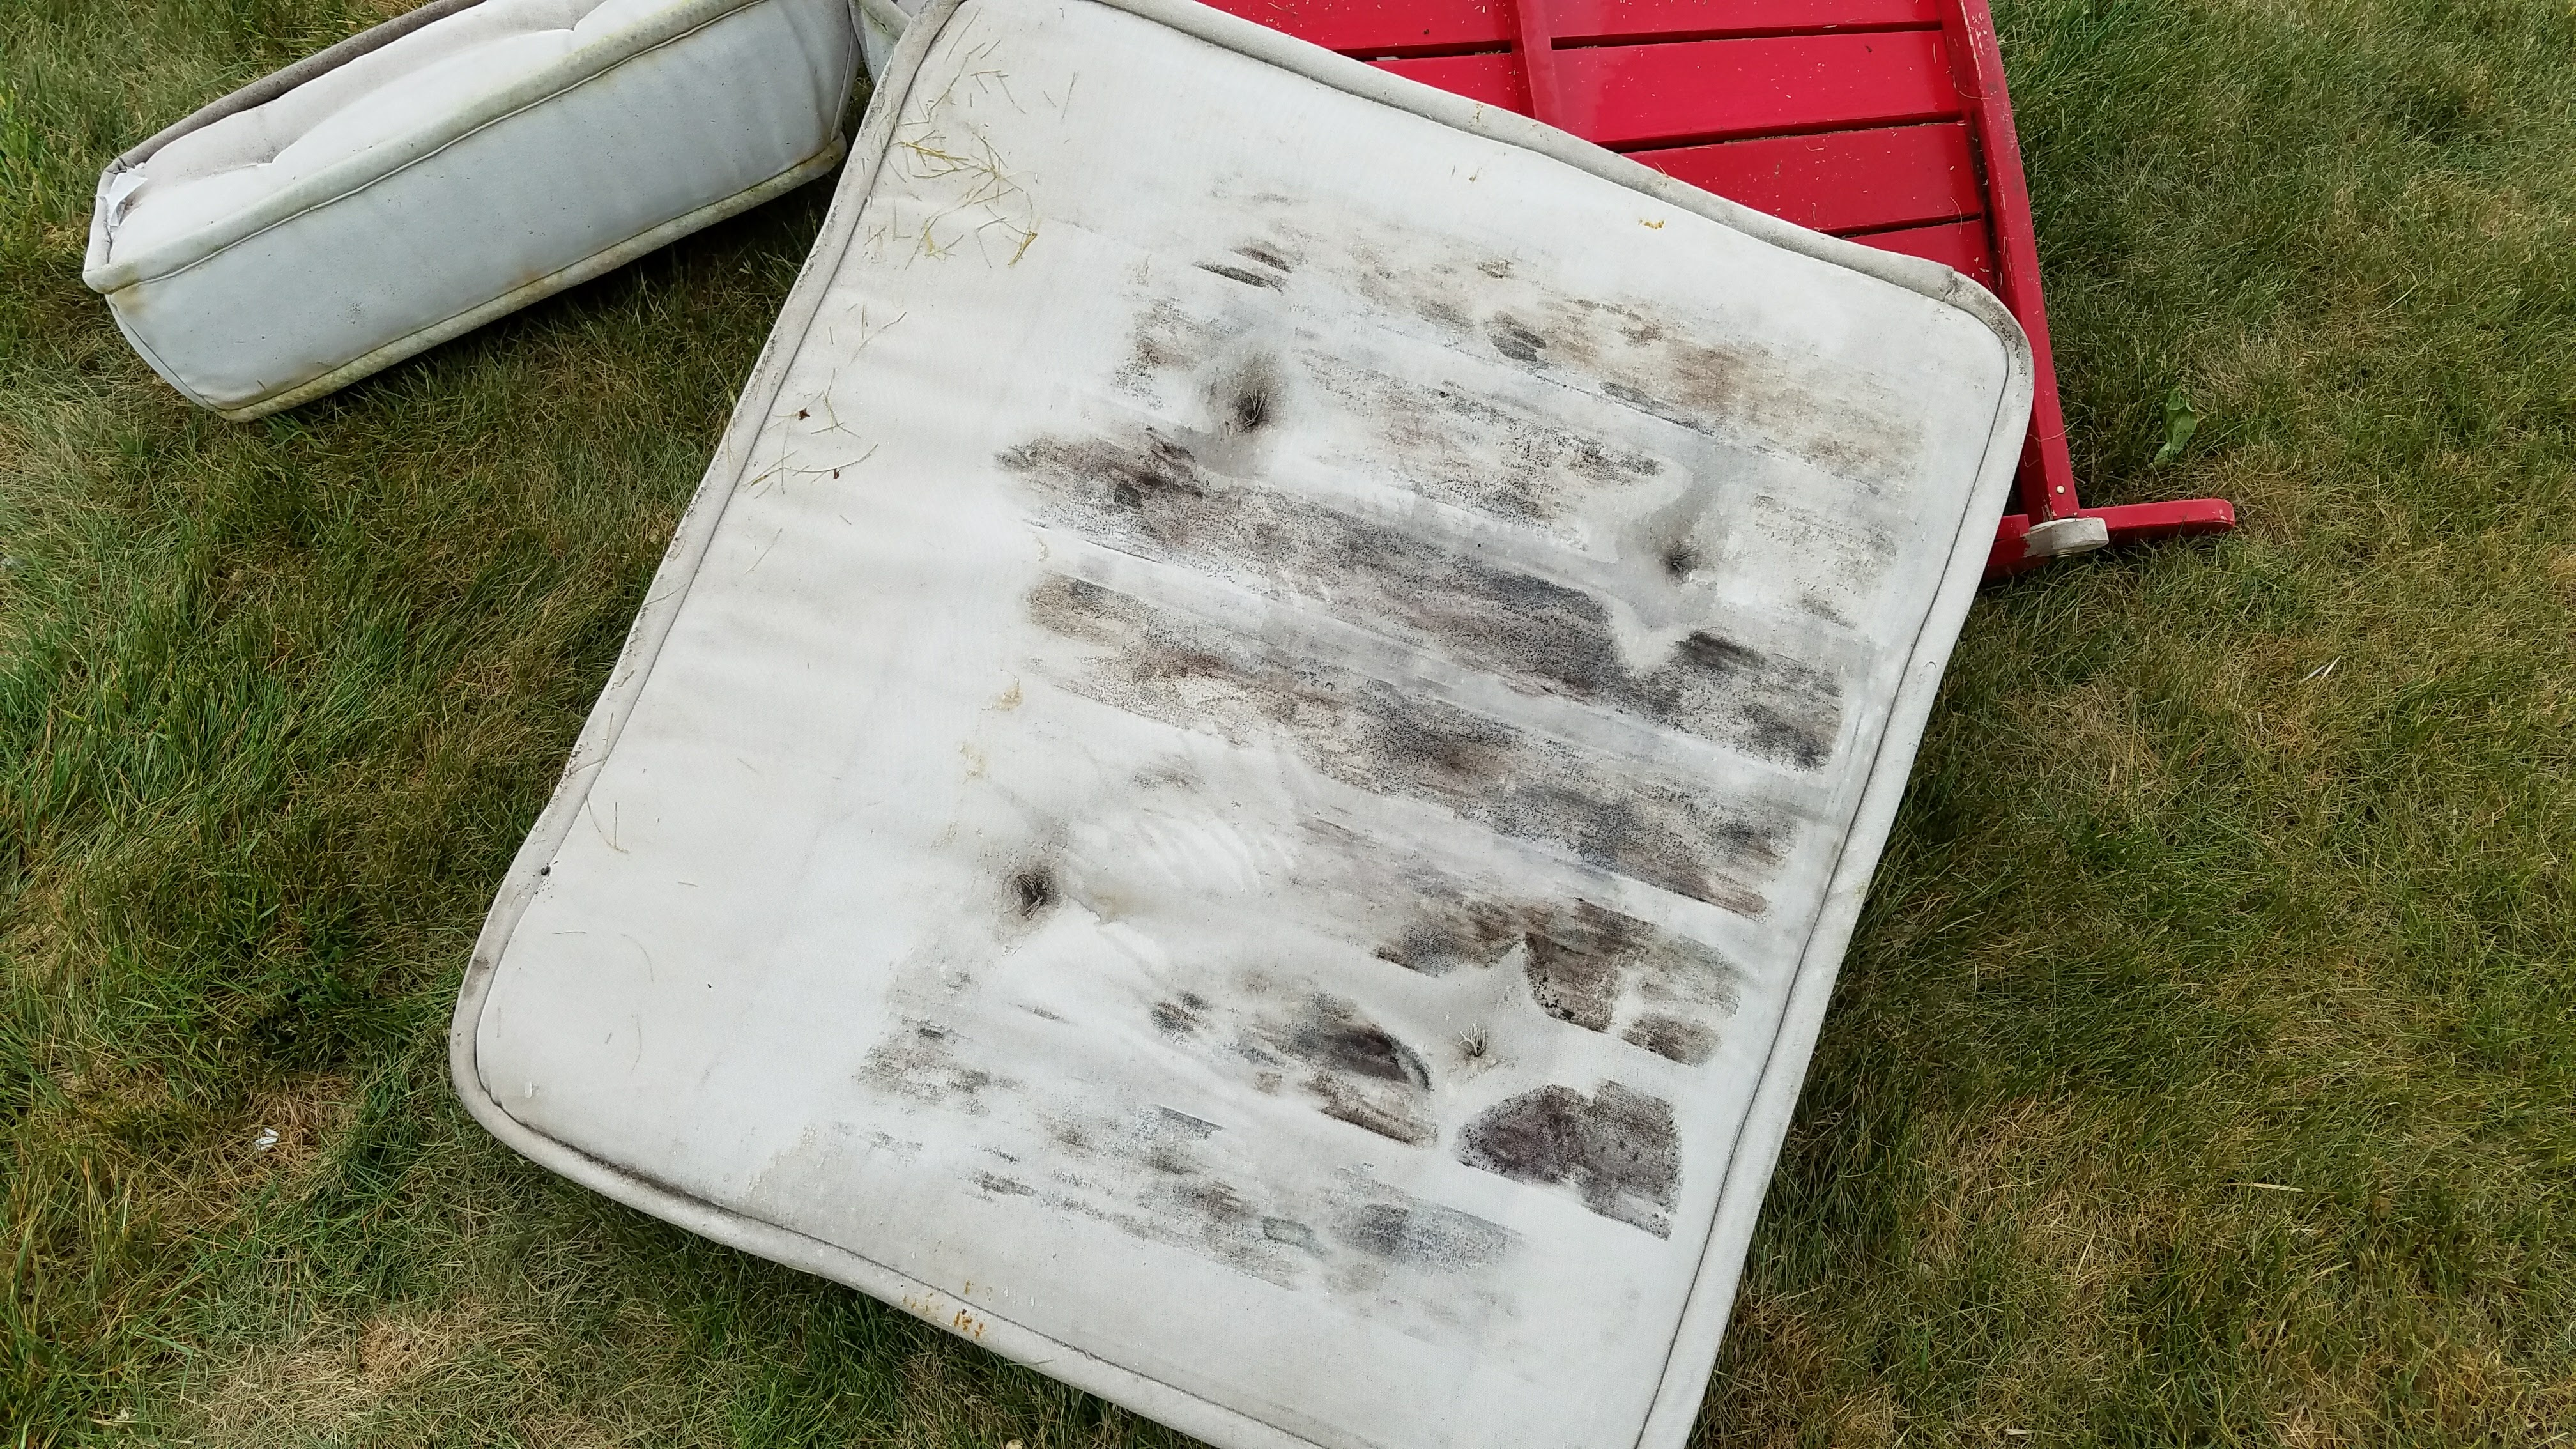 Another view of dirty white cushions